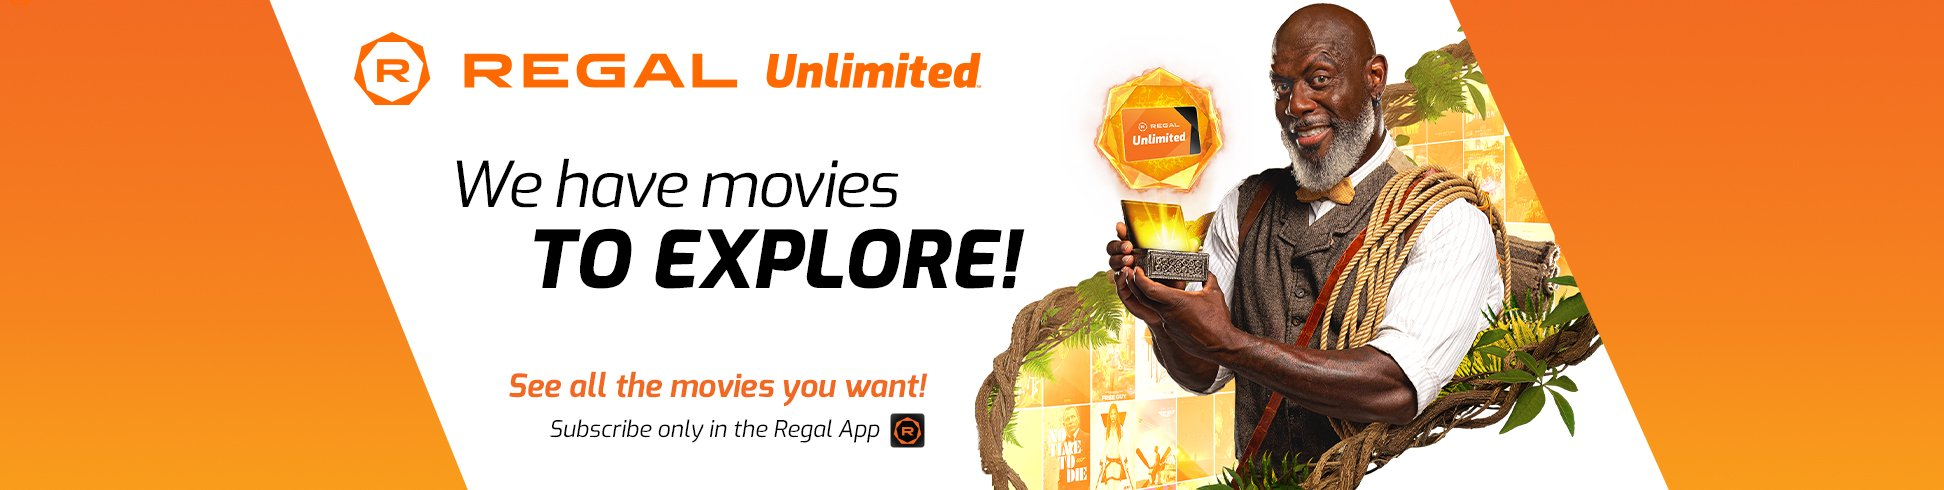 Click to Find More Details about Regal Unlimited